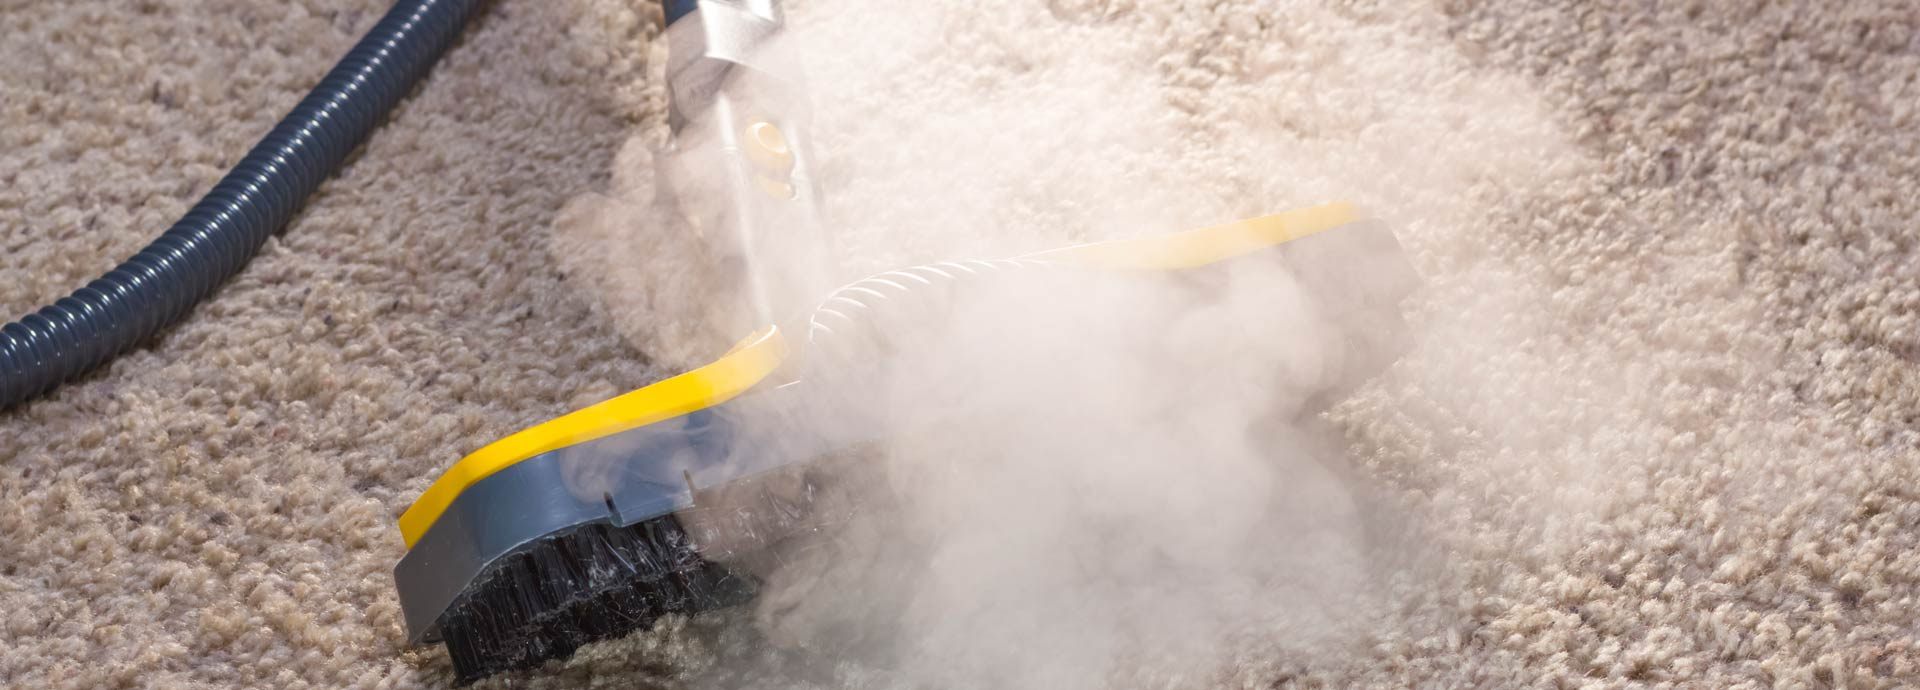 Carpet Cleaning In Houston Texas 2